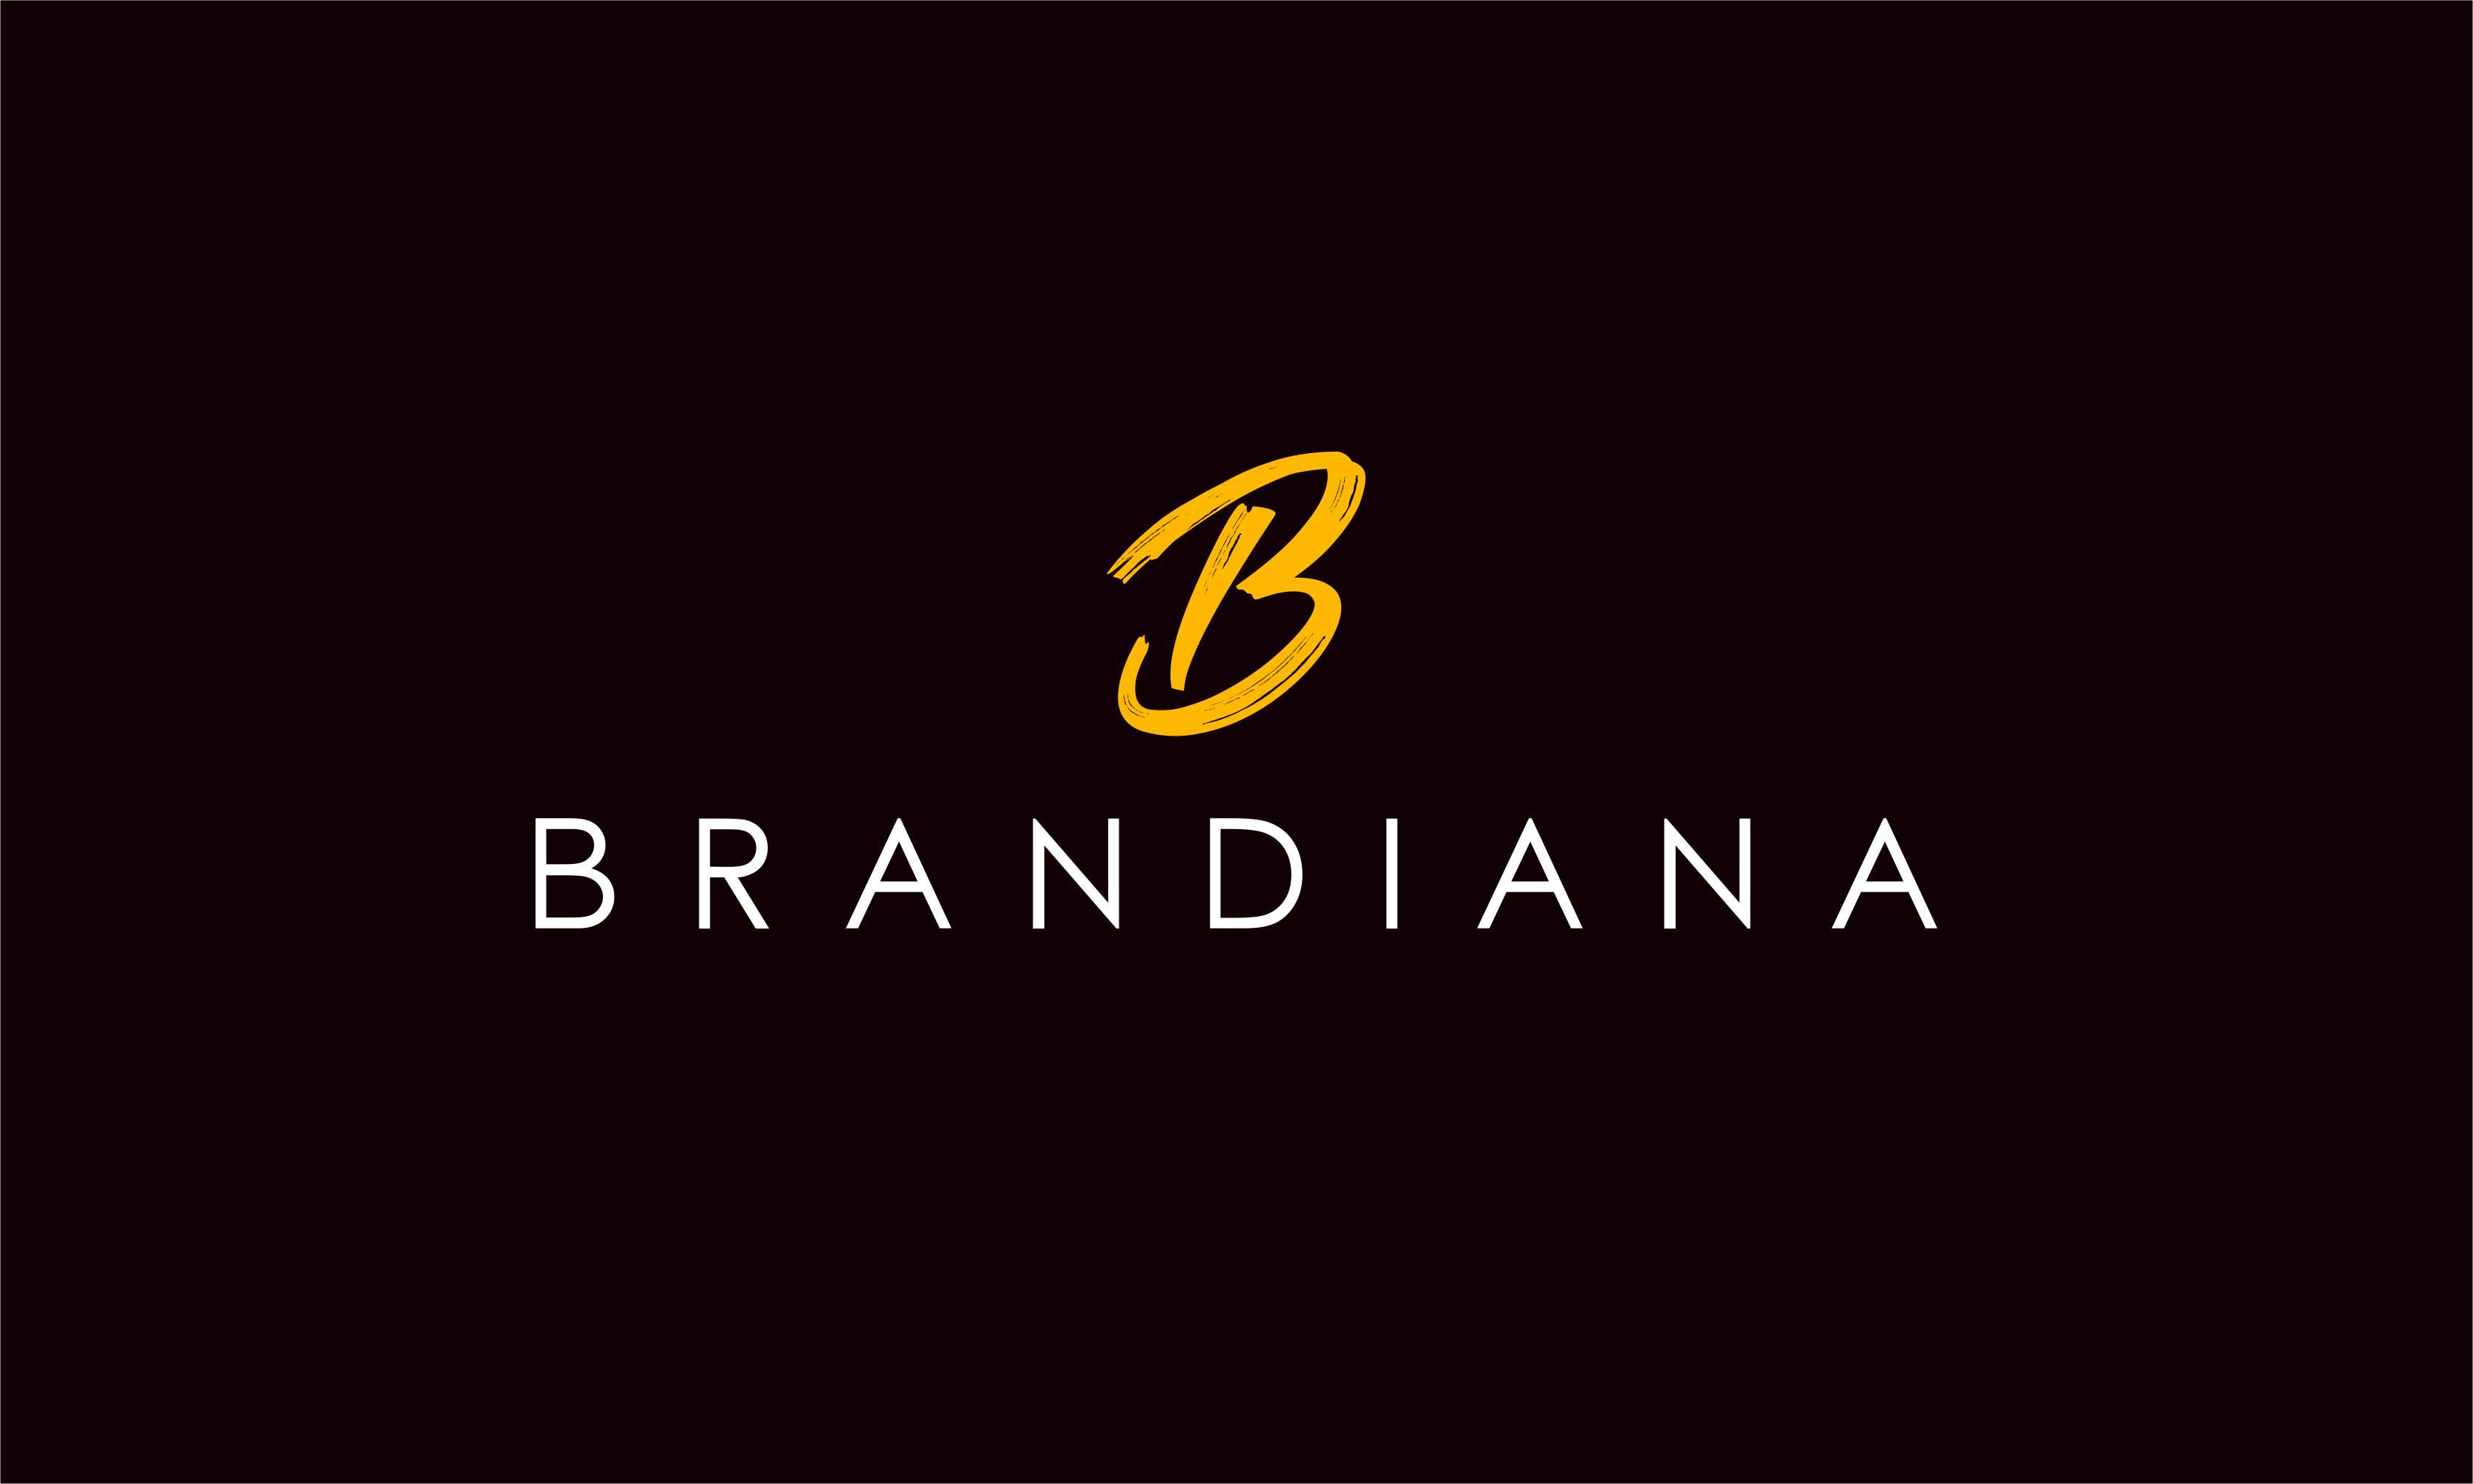 Brandiana - Marketing brand name for sale